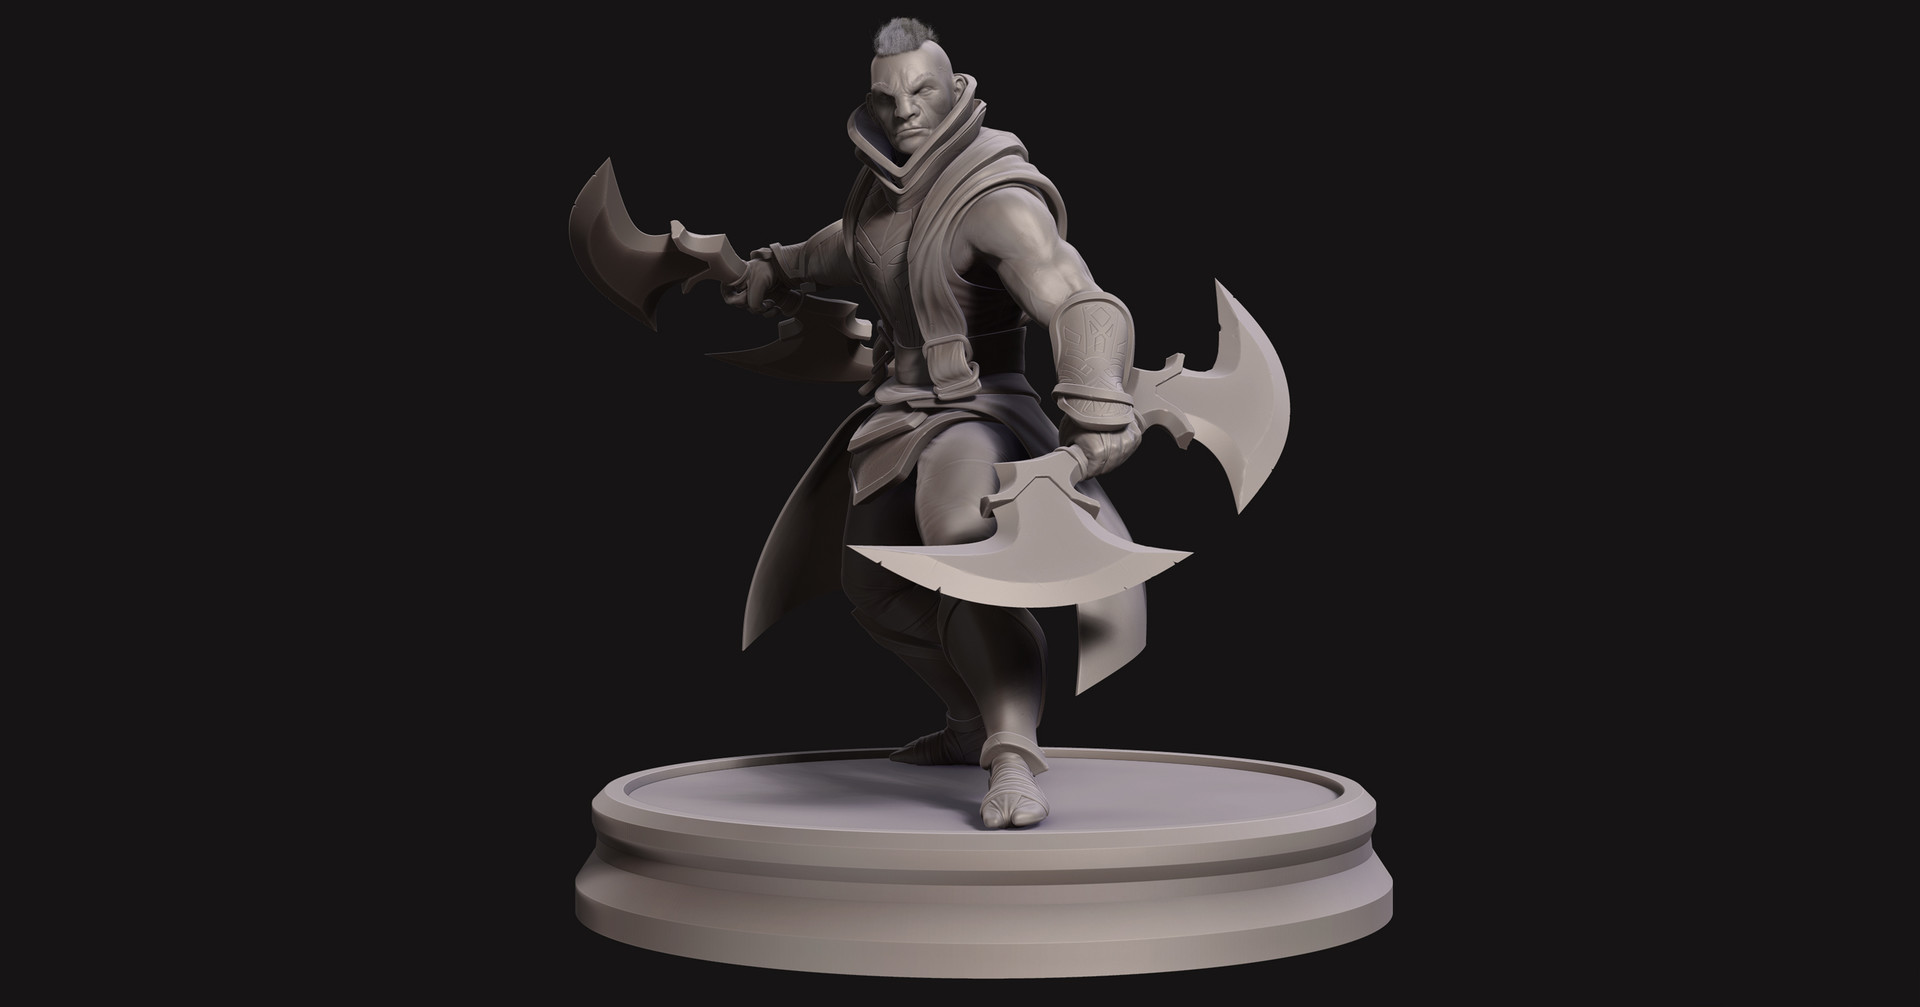 Omar chaouch antimage dota 2 fanart sculpt 04